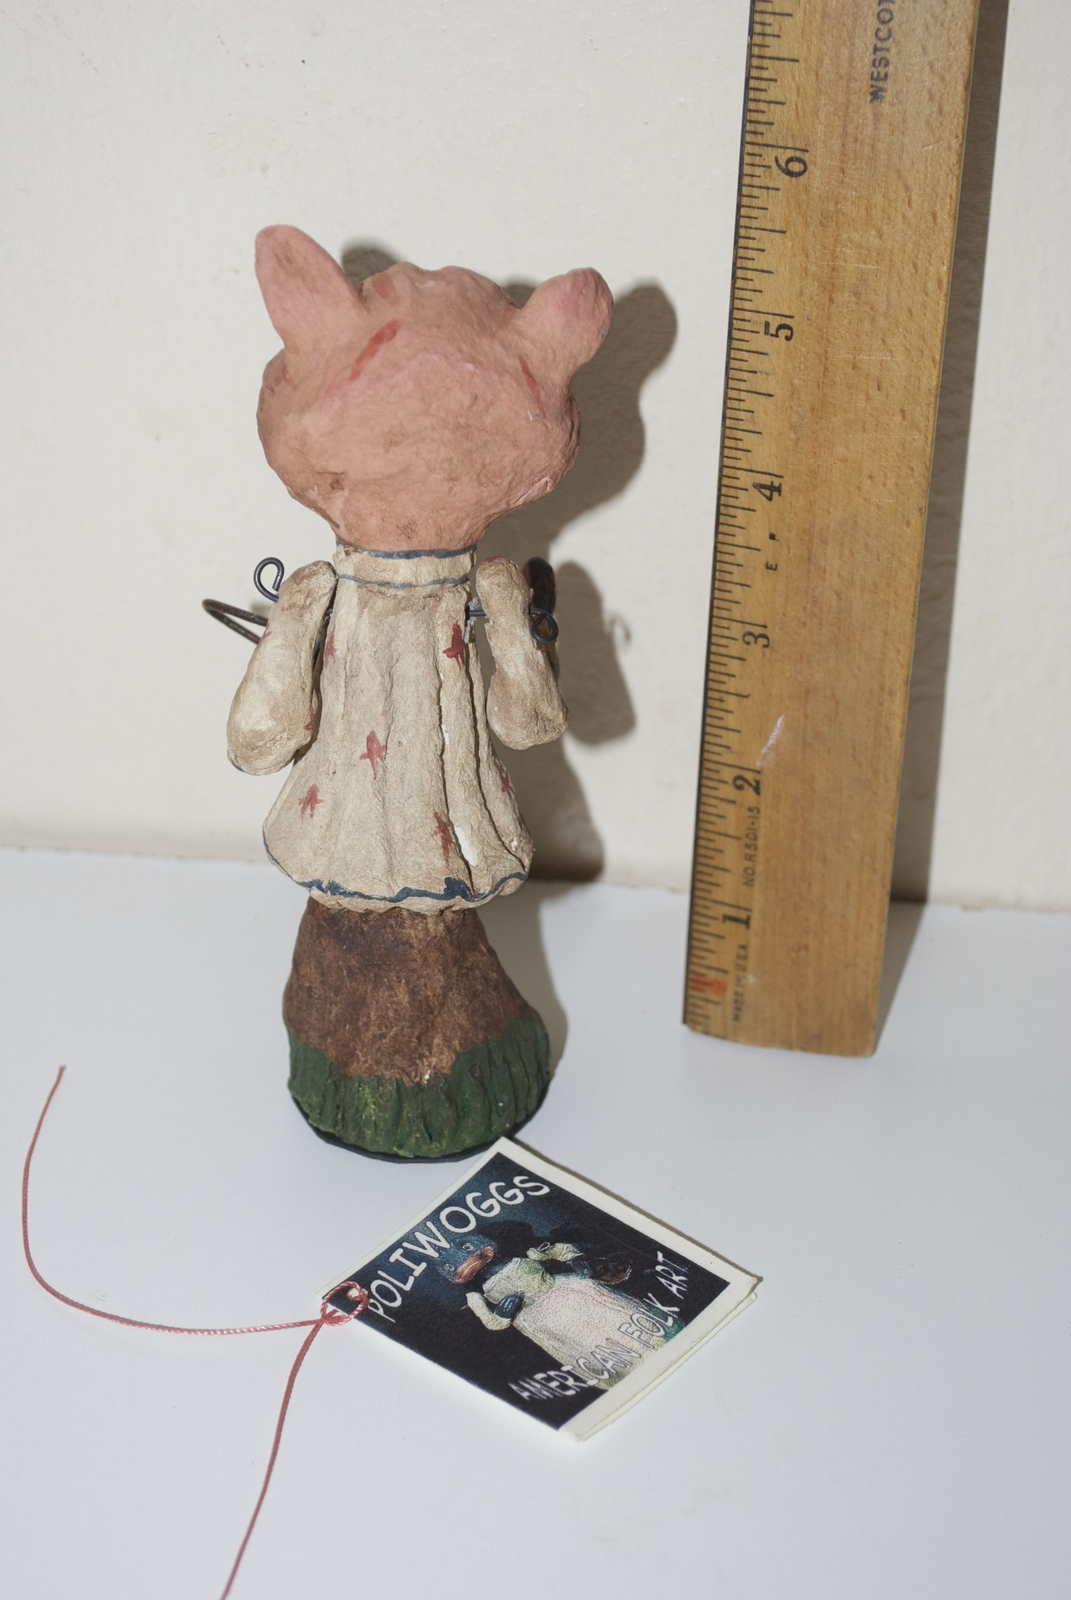 Poliwoggs American Folk Art Paper Maché 1998 Figurine Pig Girl with Watering Can